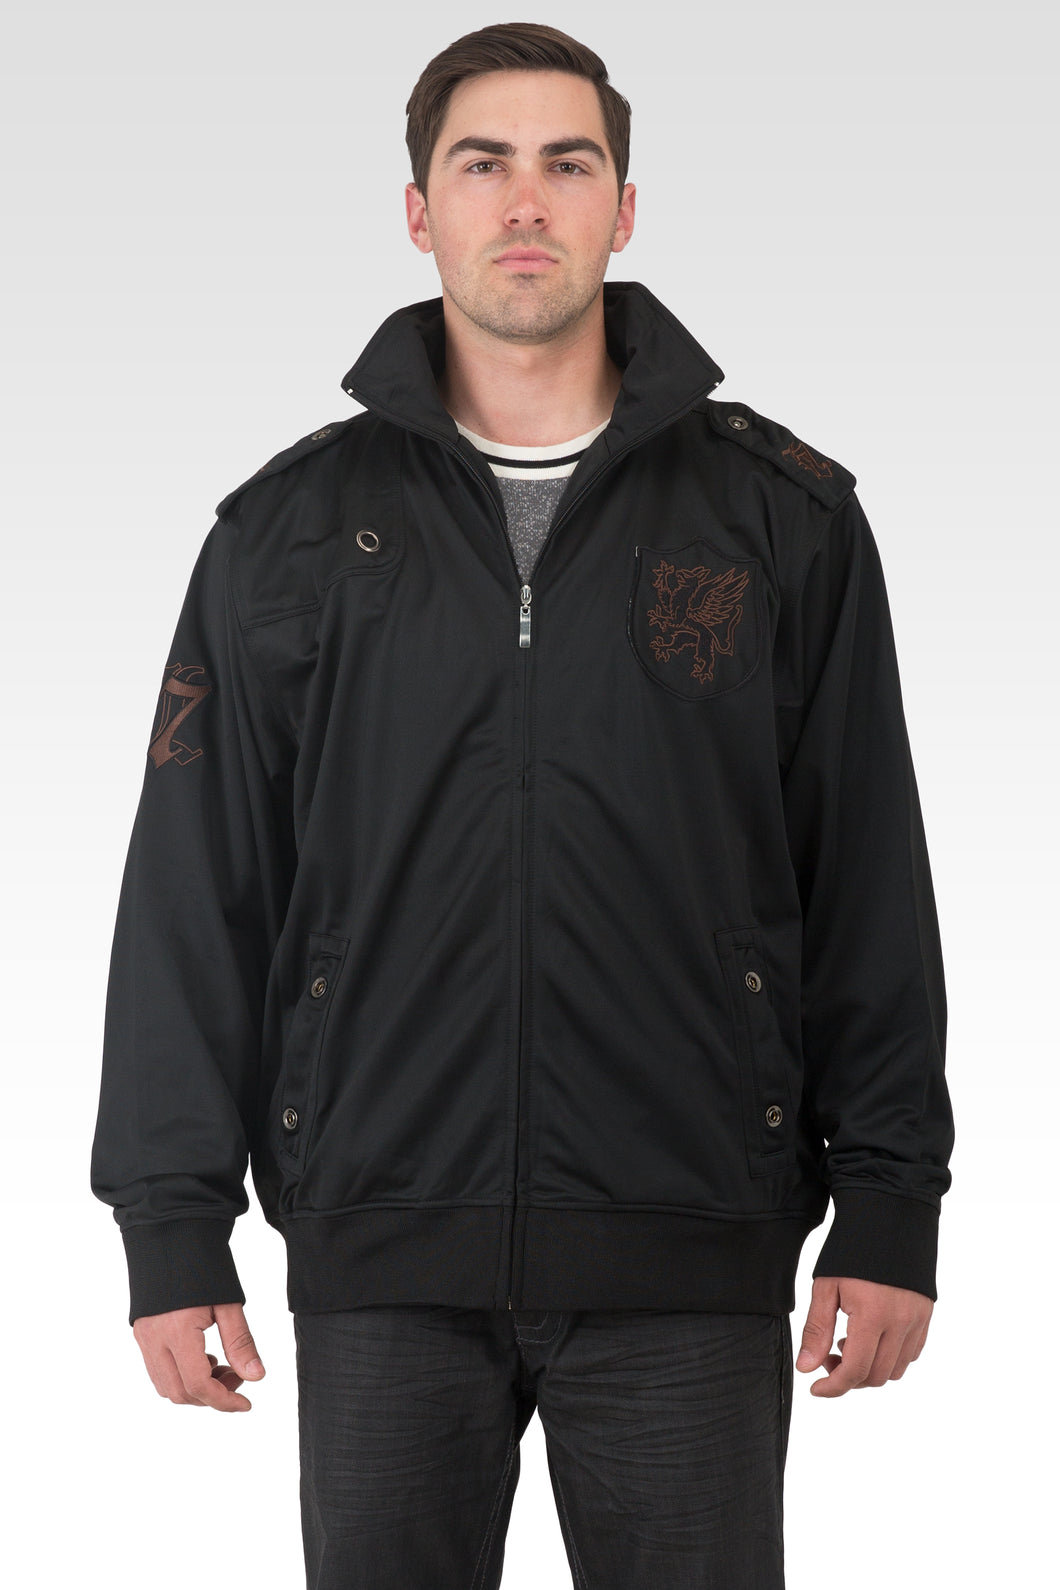 Men's Black Poly Performance Full Zip Track Jacket With Brown Embroidery Patches